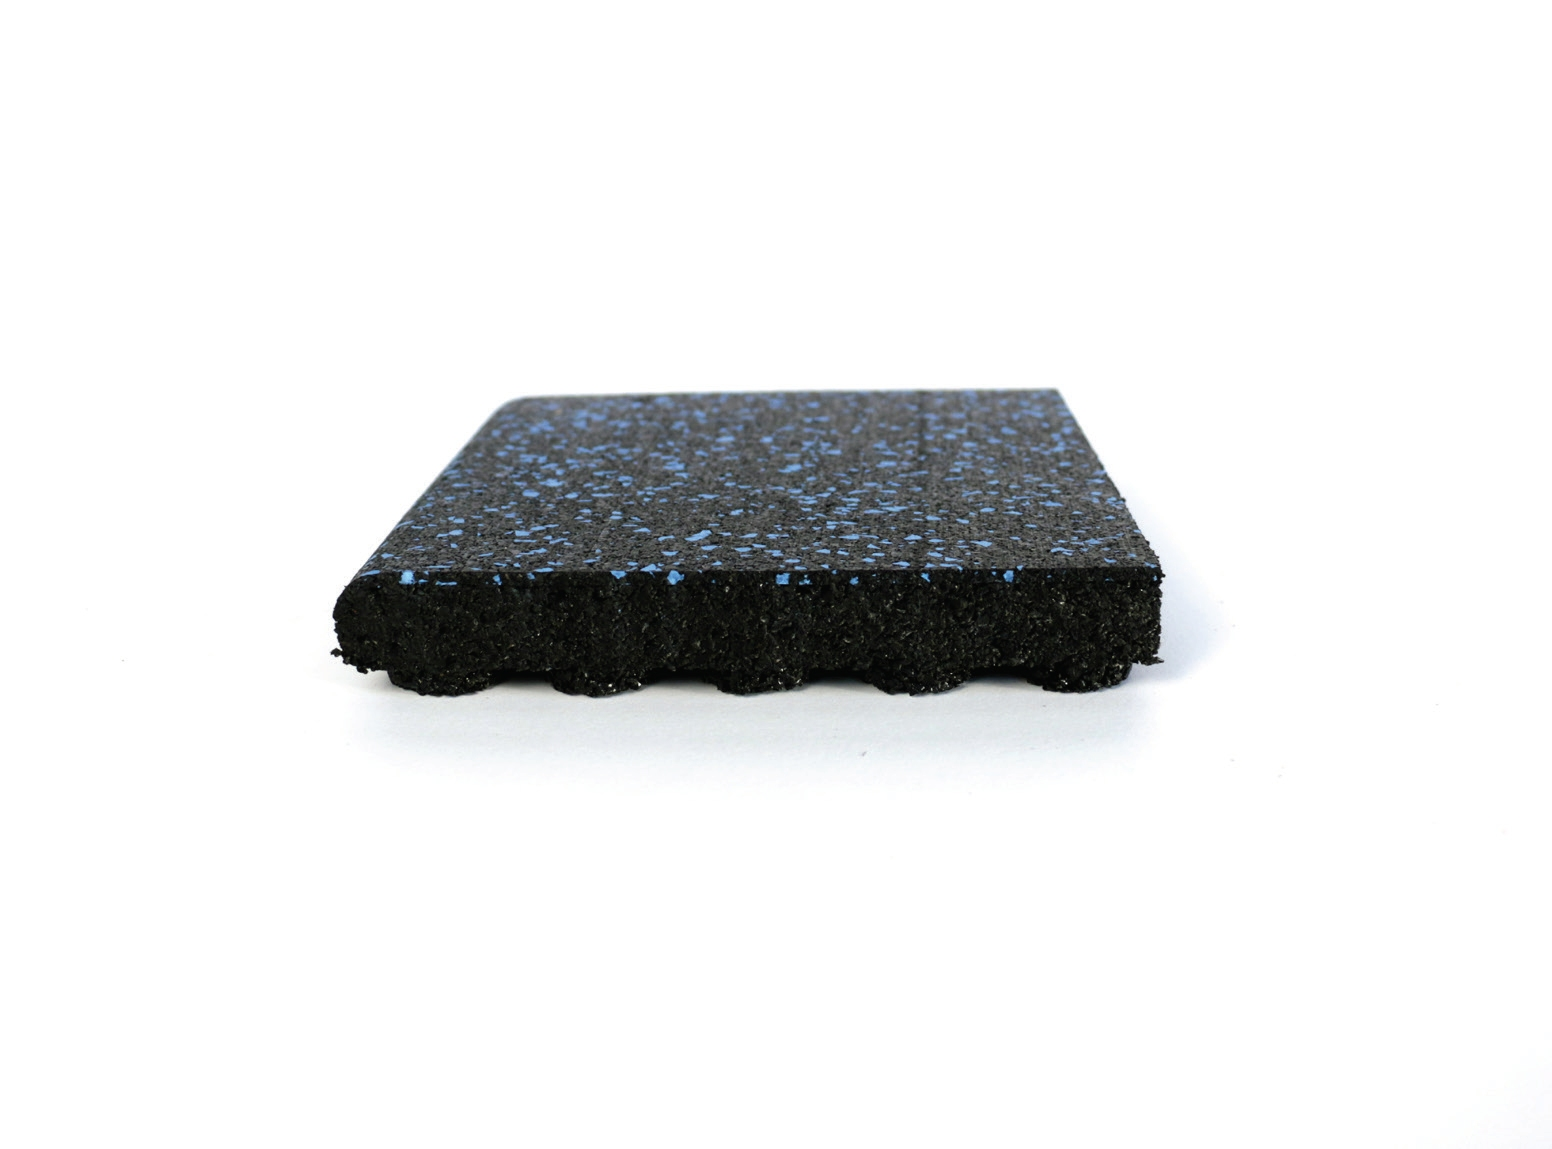 Everlast UltraTile - offers enhanced shock absorption against impact in the moderate to extreme weight drop areas